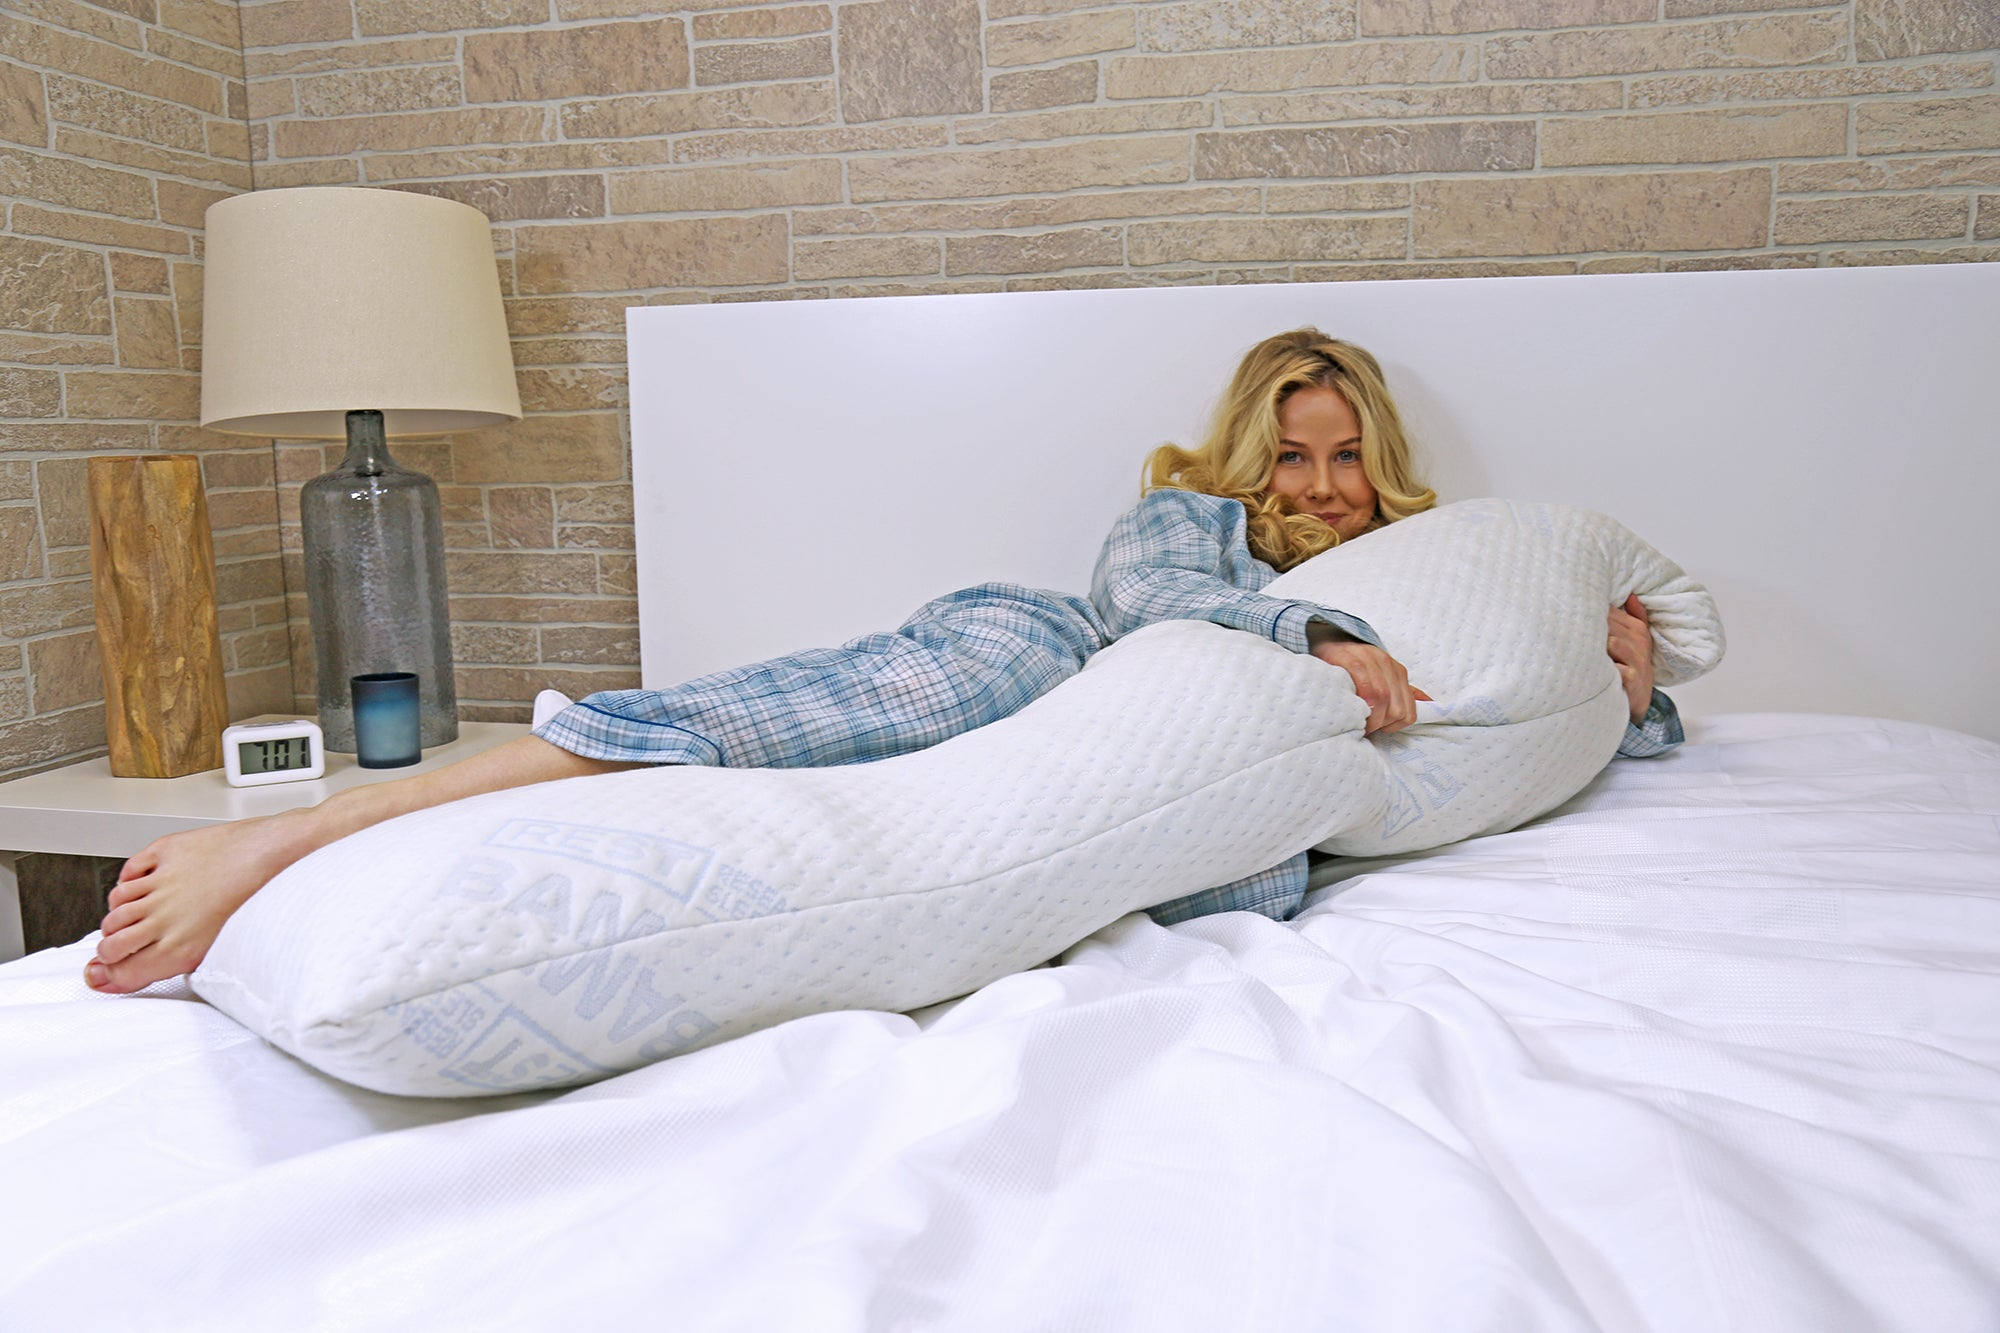 "BRADS DEAL 50% OFF -REST Luxury Bamboo Cooling Pillow Covers (2 Pack) ""DISCOUNT APPLIED IN SHOPPING CART"""